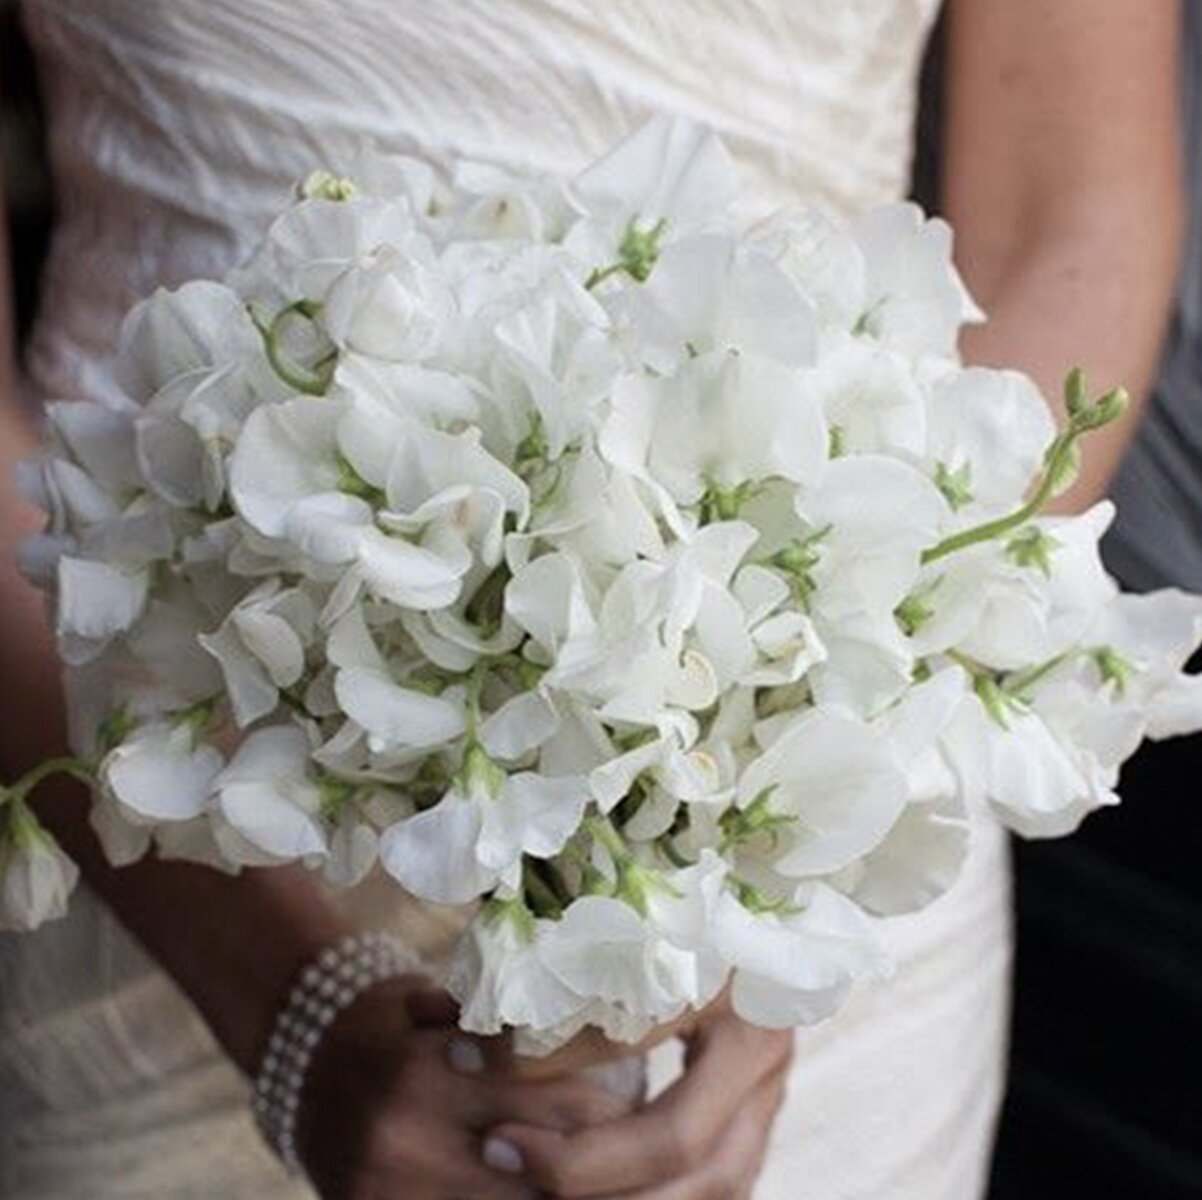 sydney-wedding-flower-packages-prices-cheap-affordable-bouquet-sweet-pea